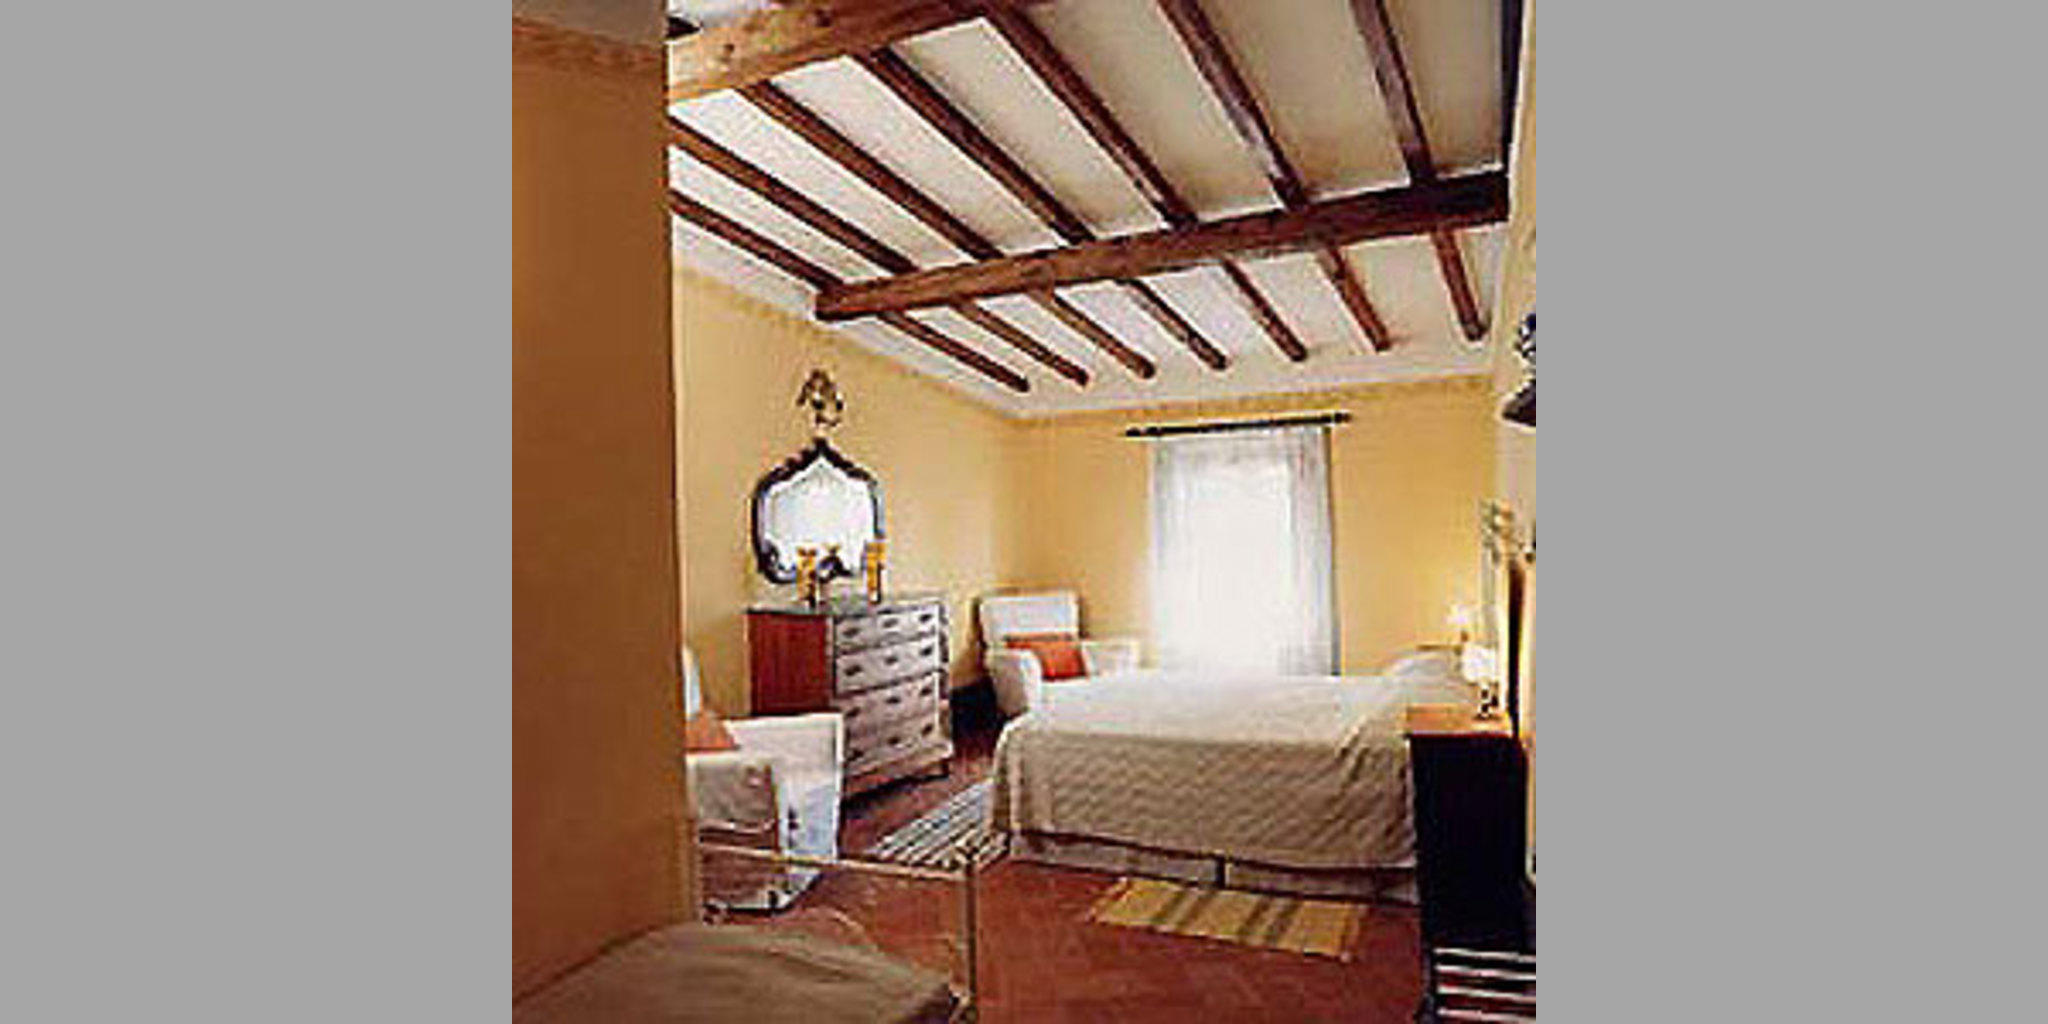 Bed & Breakfast Buggiano - M. Pierucci